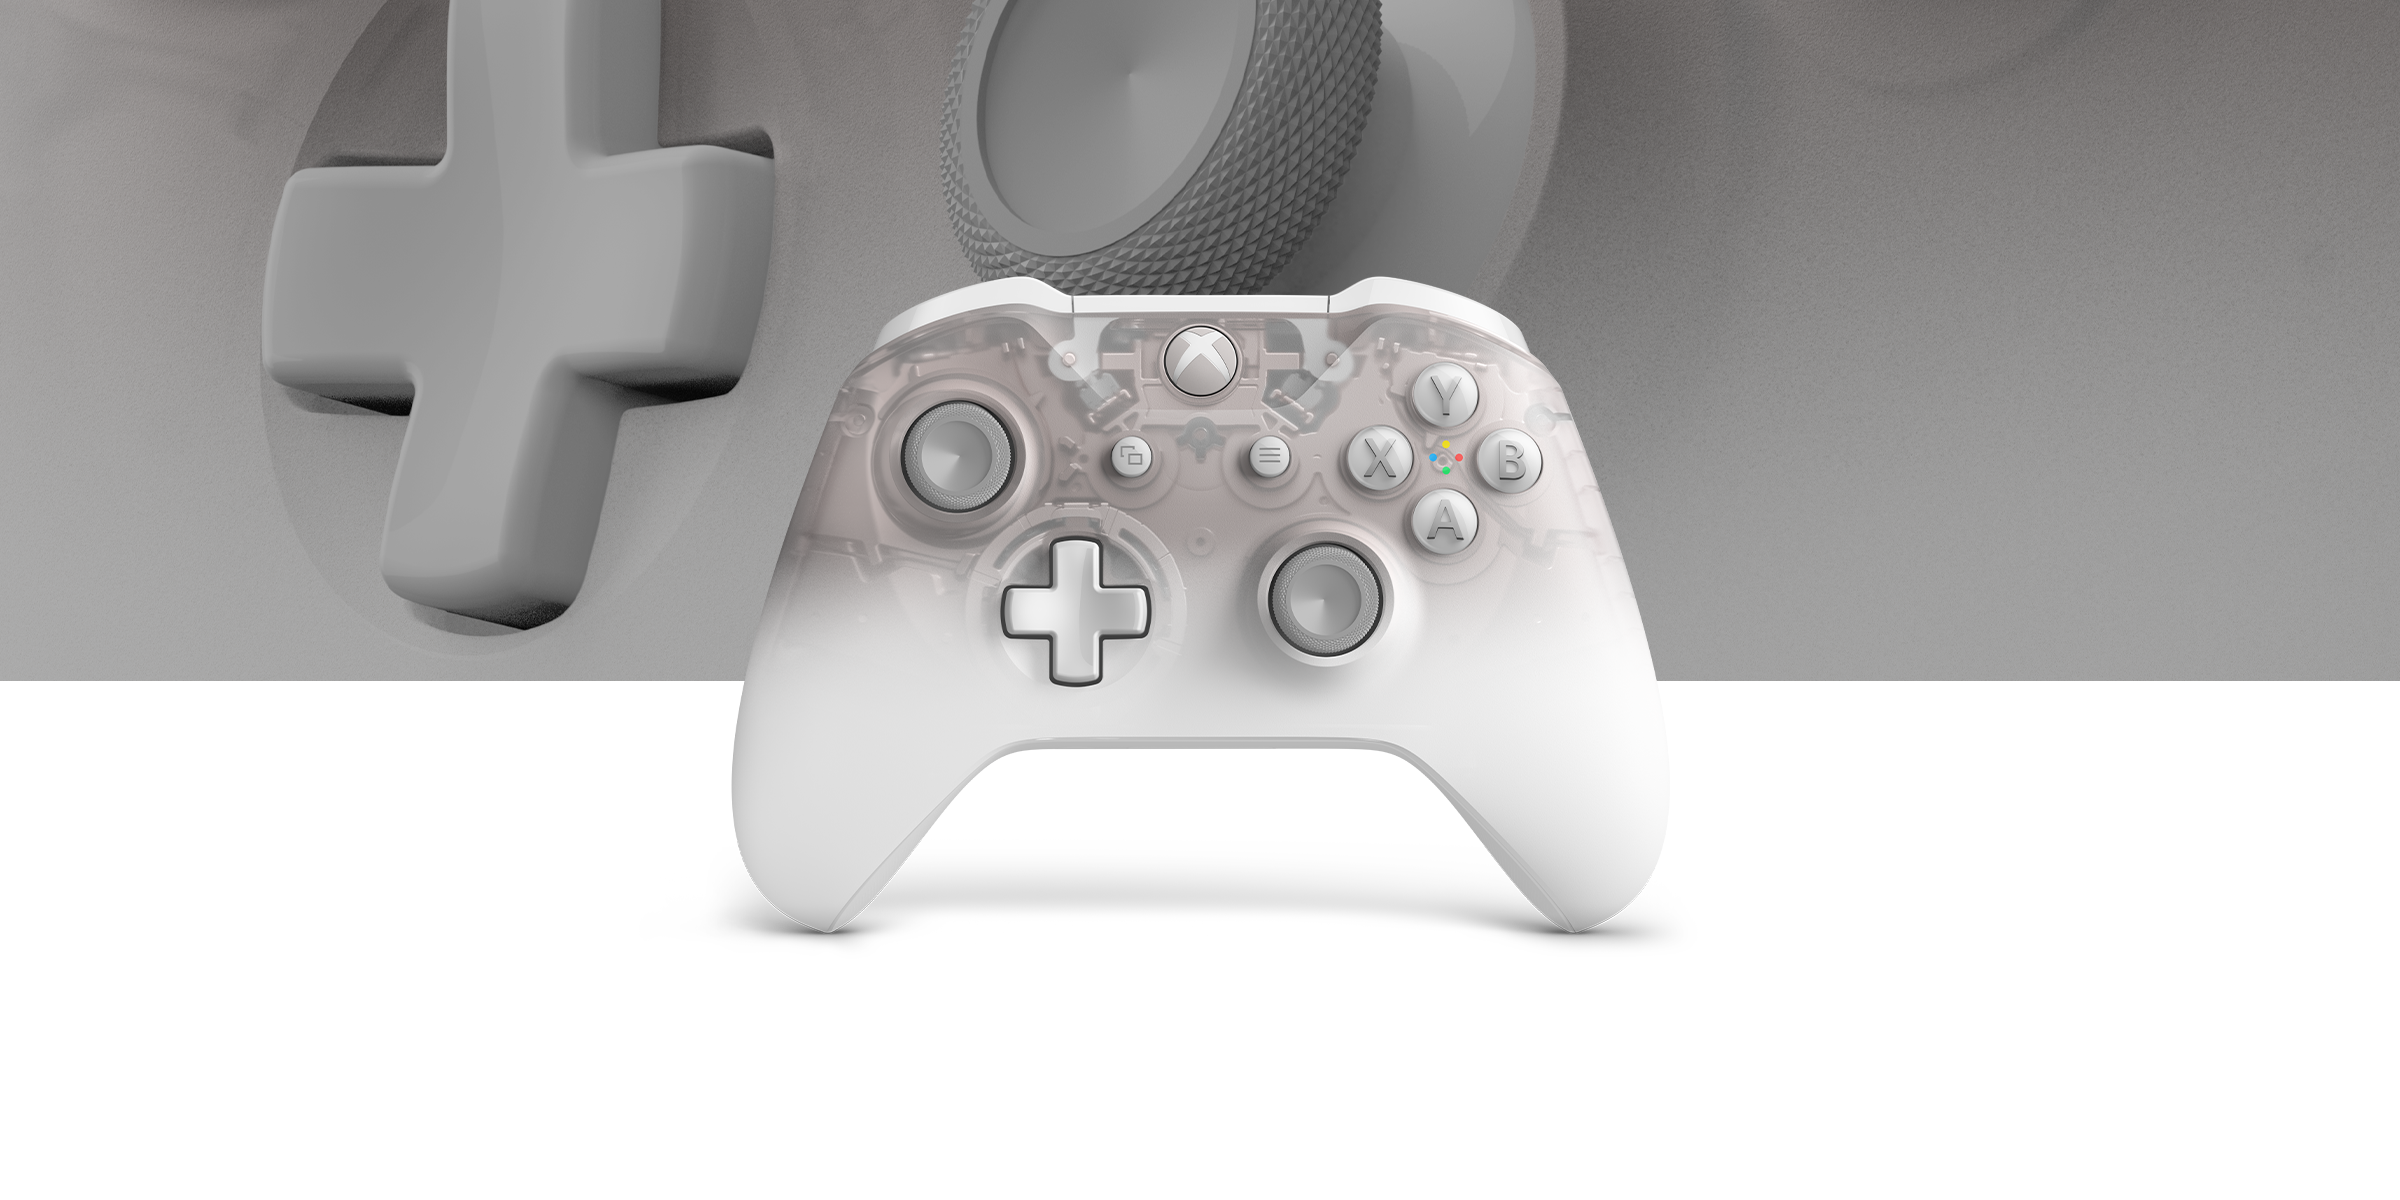 Xbox Wireless Controller Spantom White Special Edition with a close up view of the controller in the background